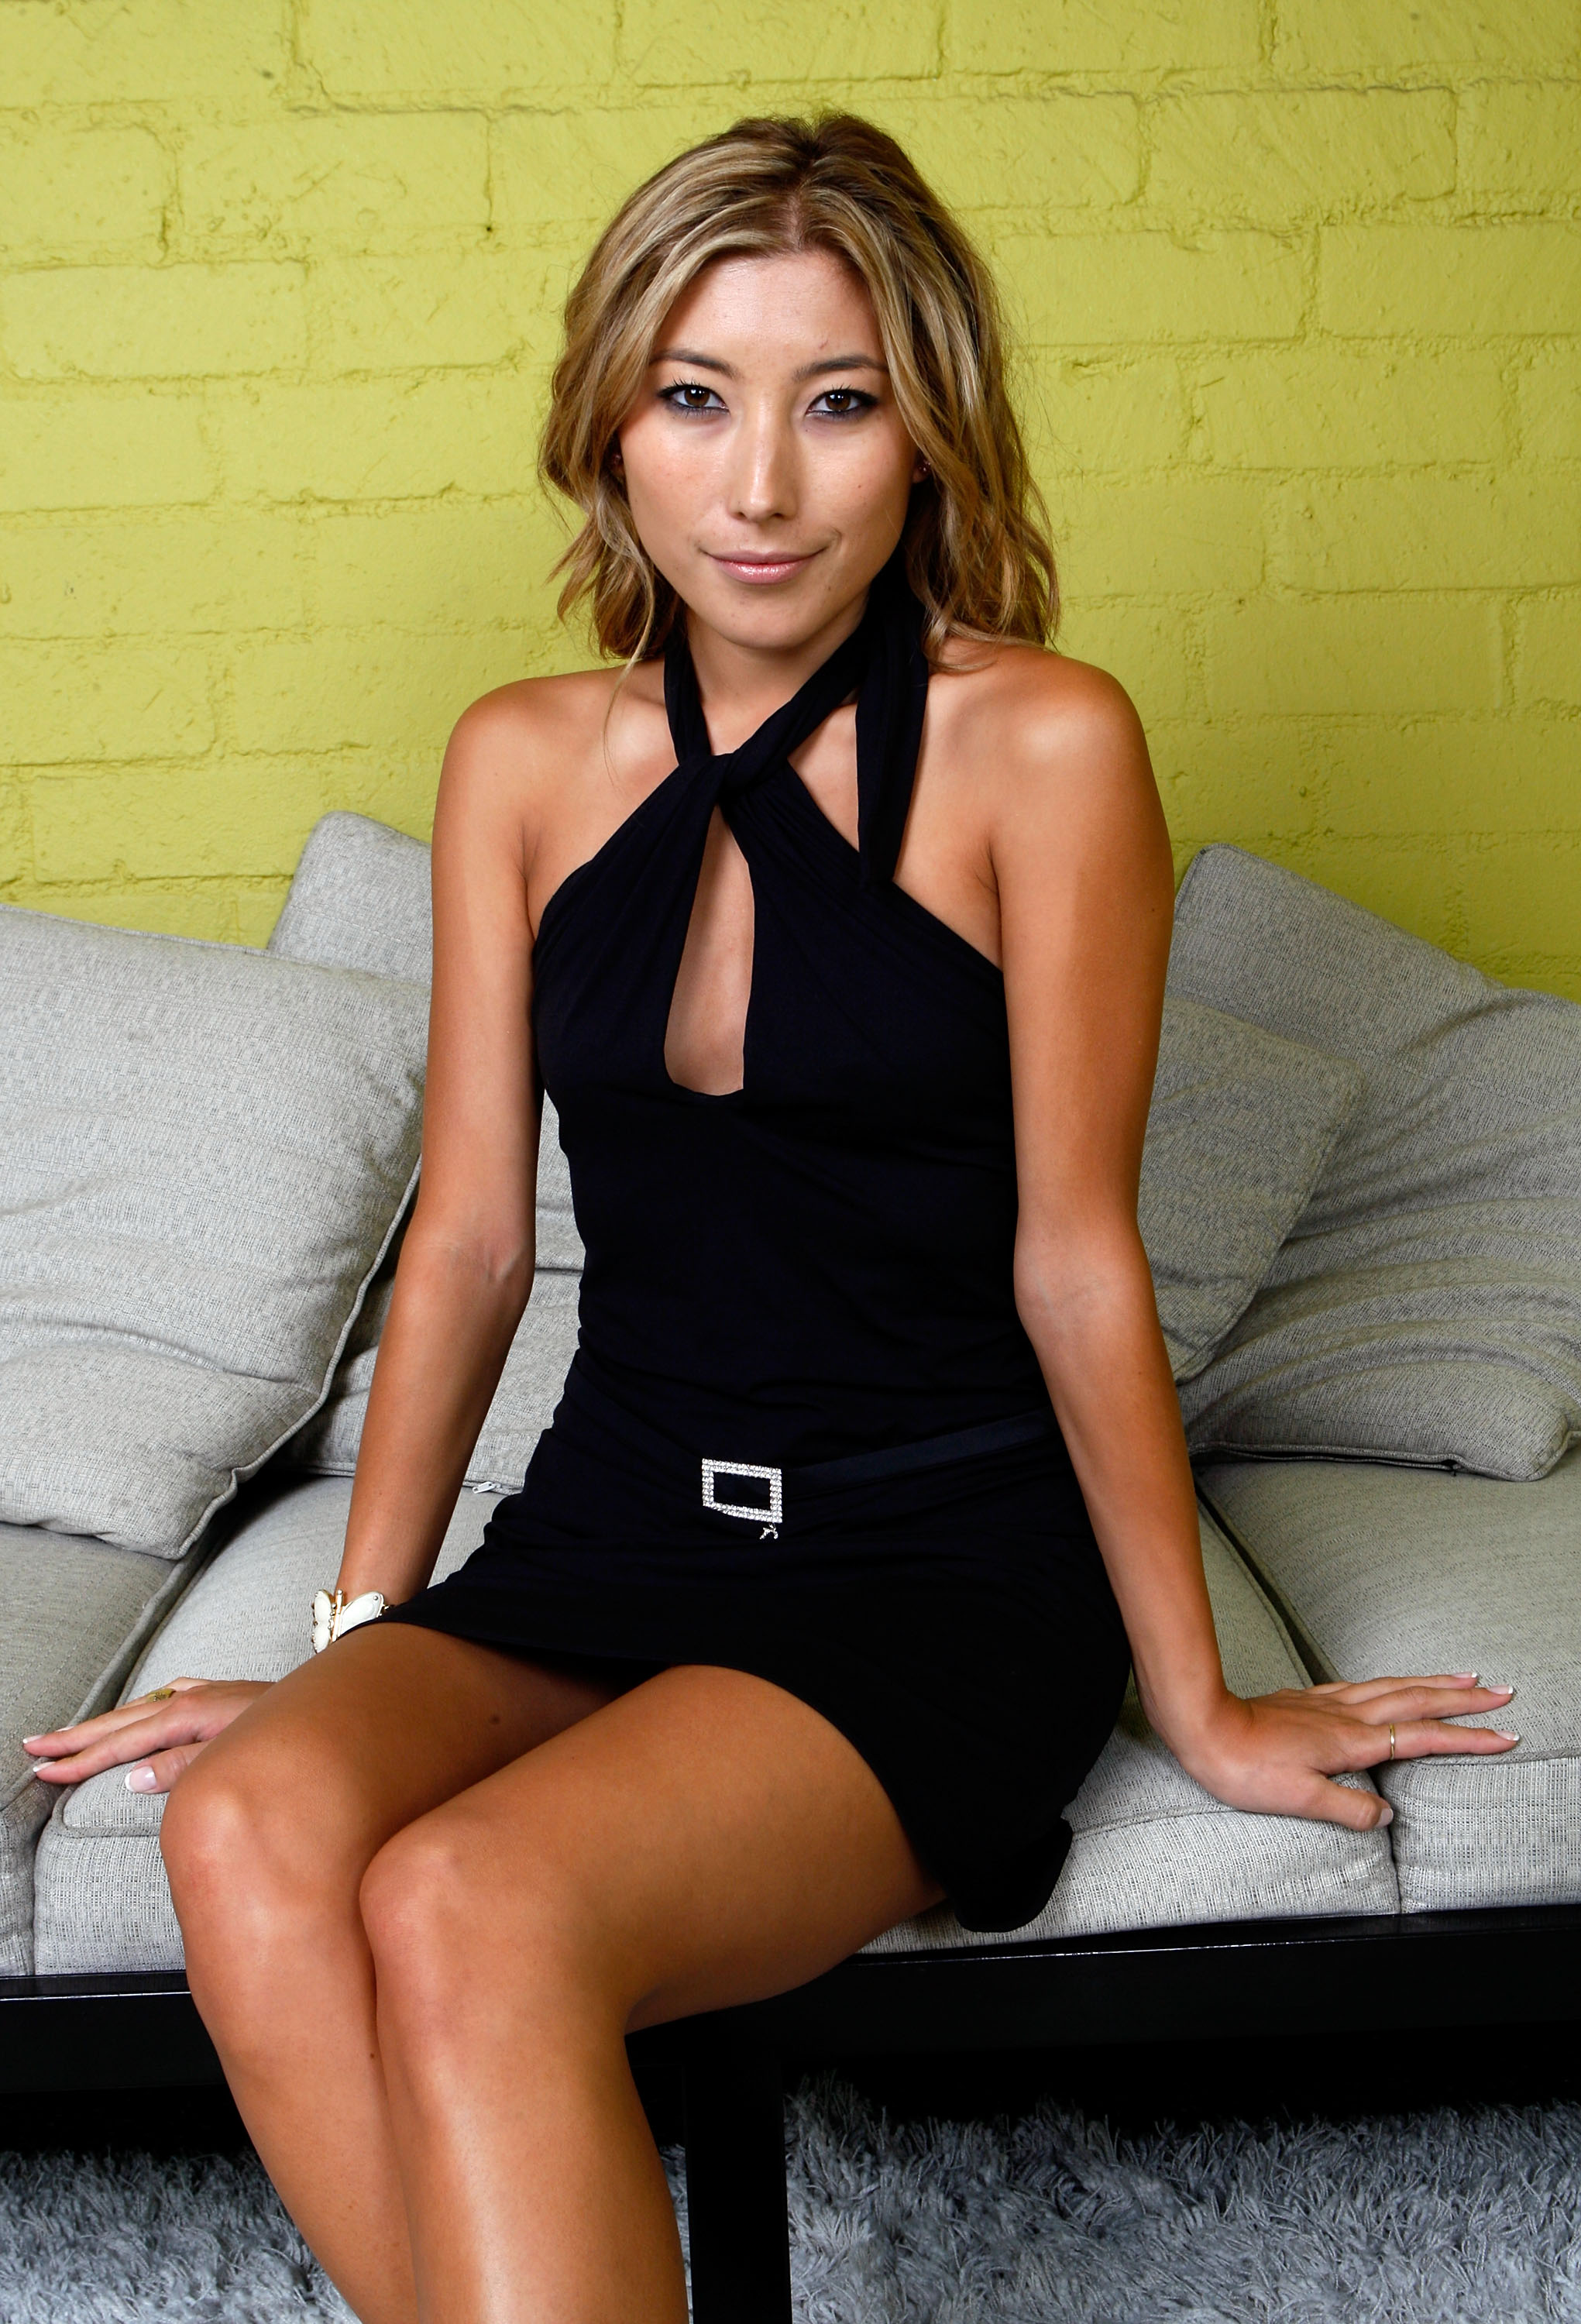 dichen lachman photo #167734 | celebs-place